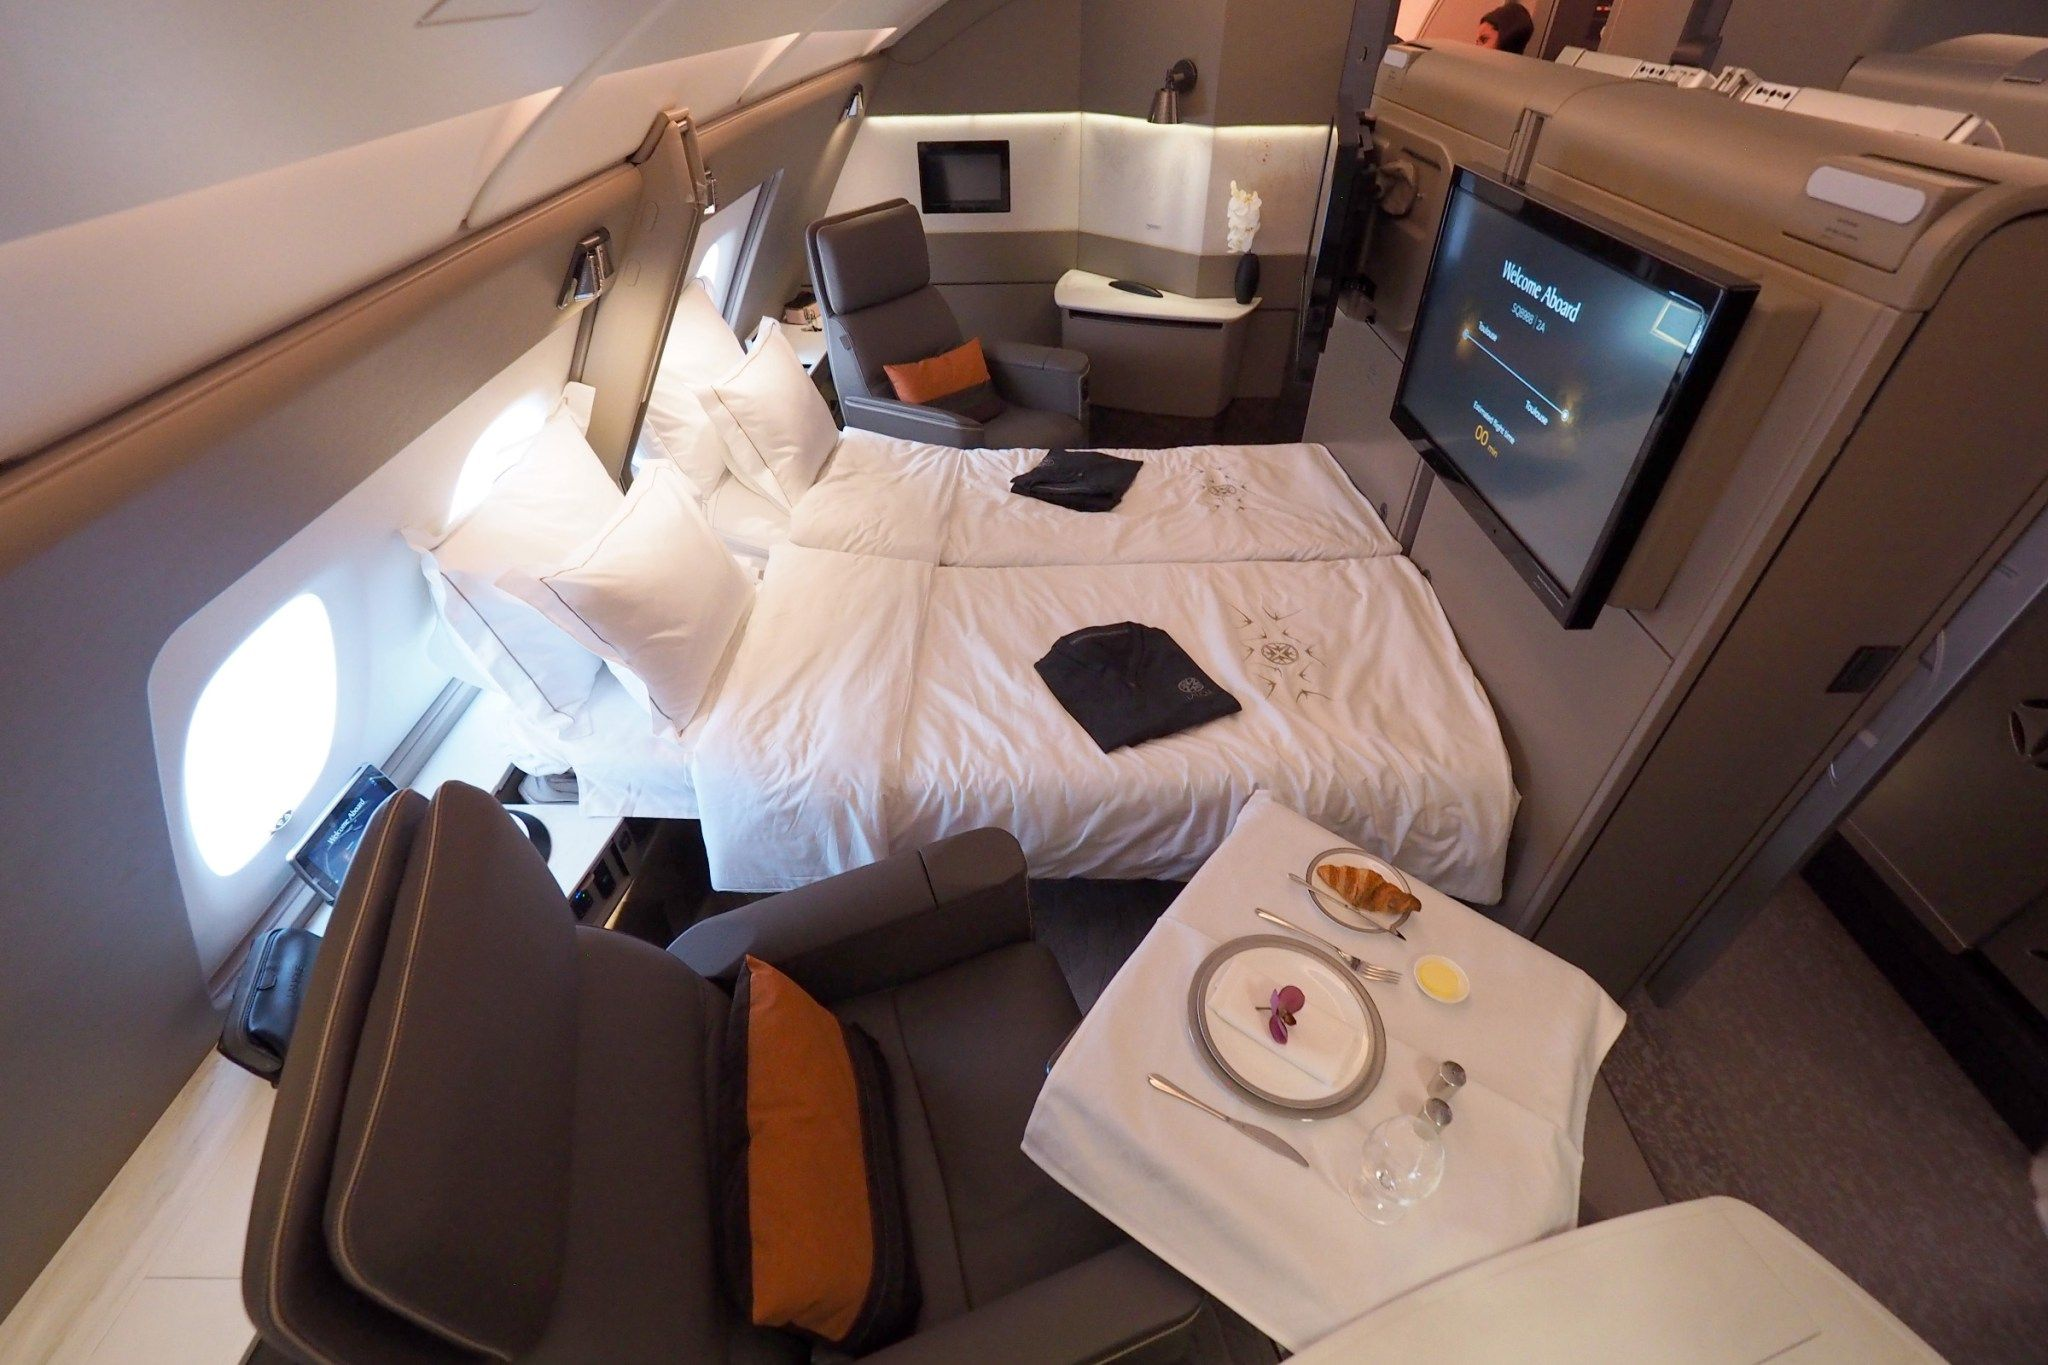 The Best A380 First Class Options and How to Redeem Miles